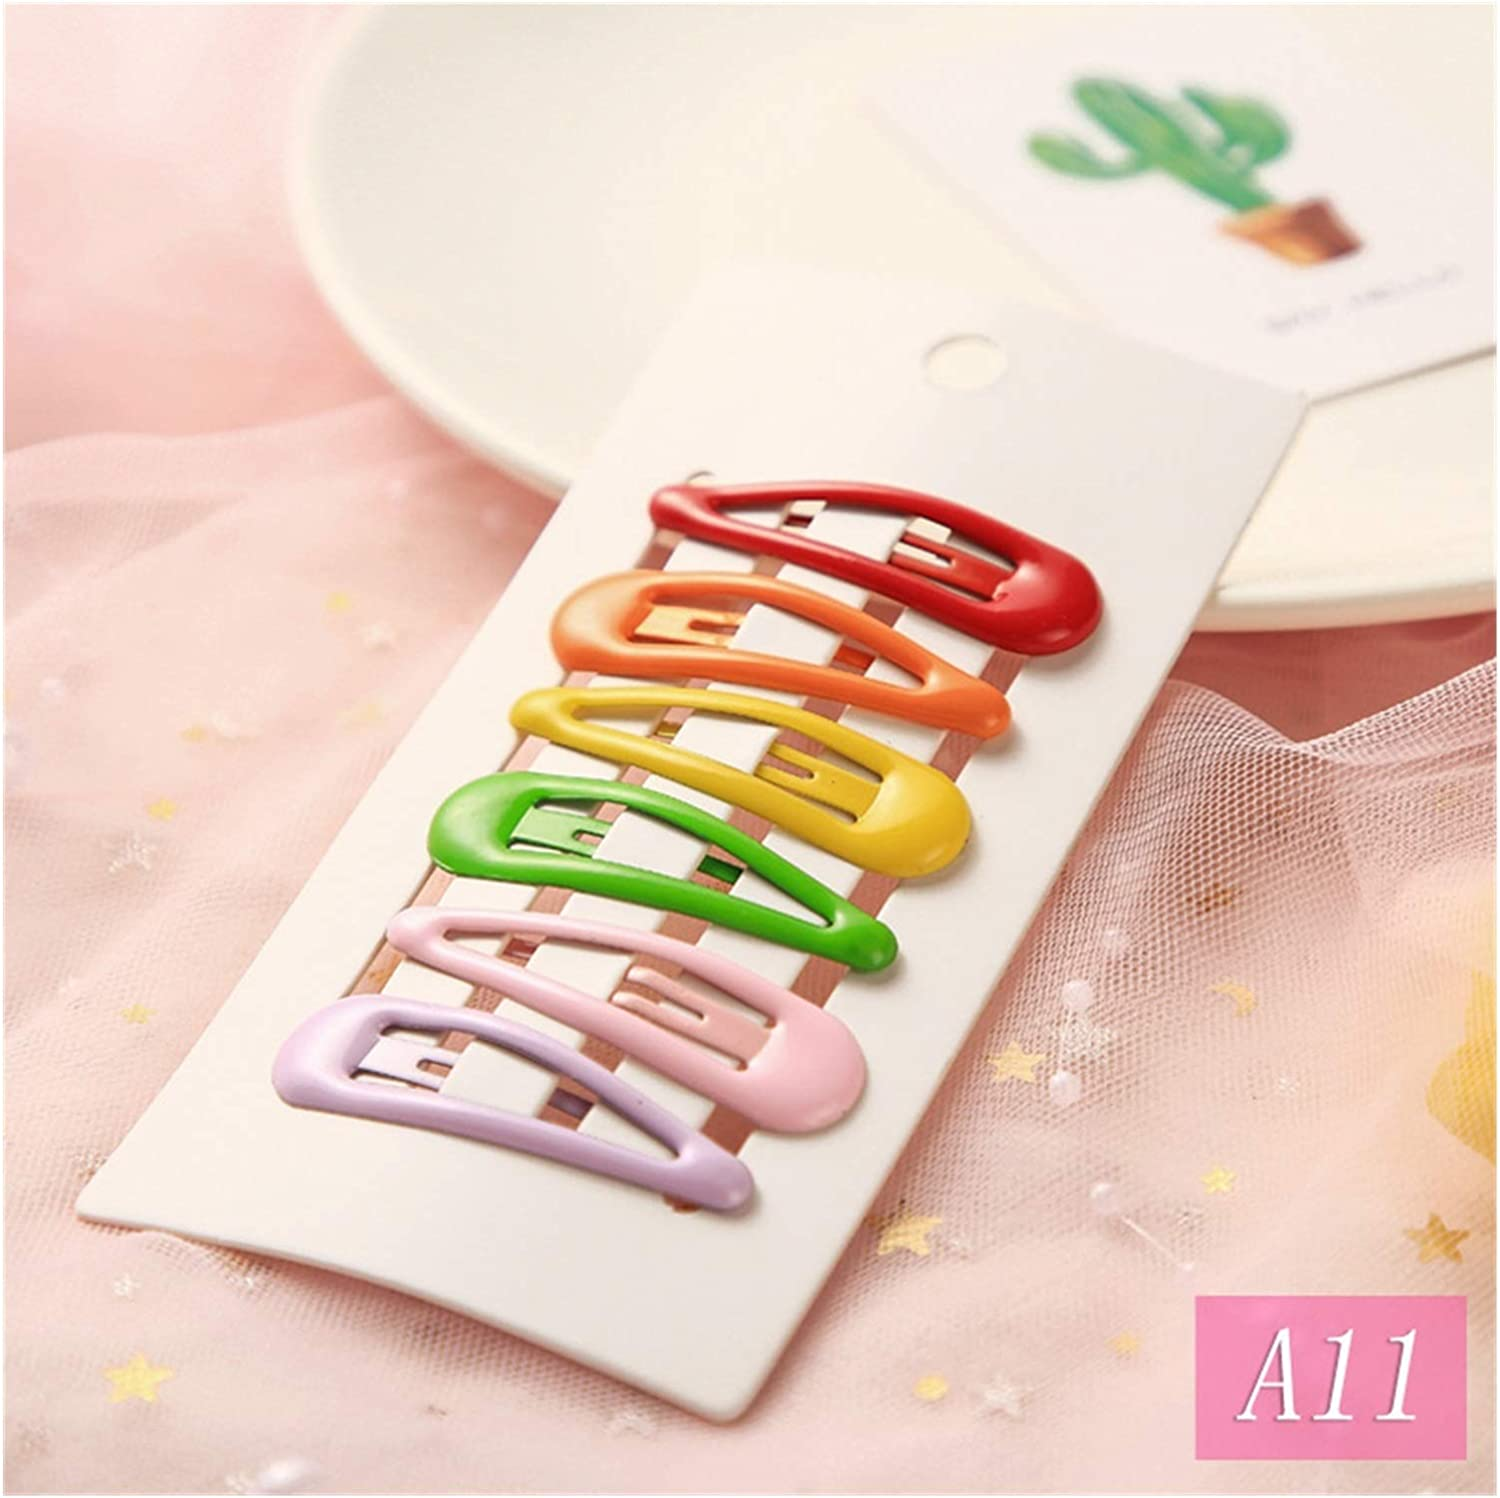 JJSNN Hair Pin 6pcs Accessories Clips Don't miss the campaign snap Colo Metal Cheap sale